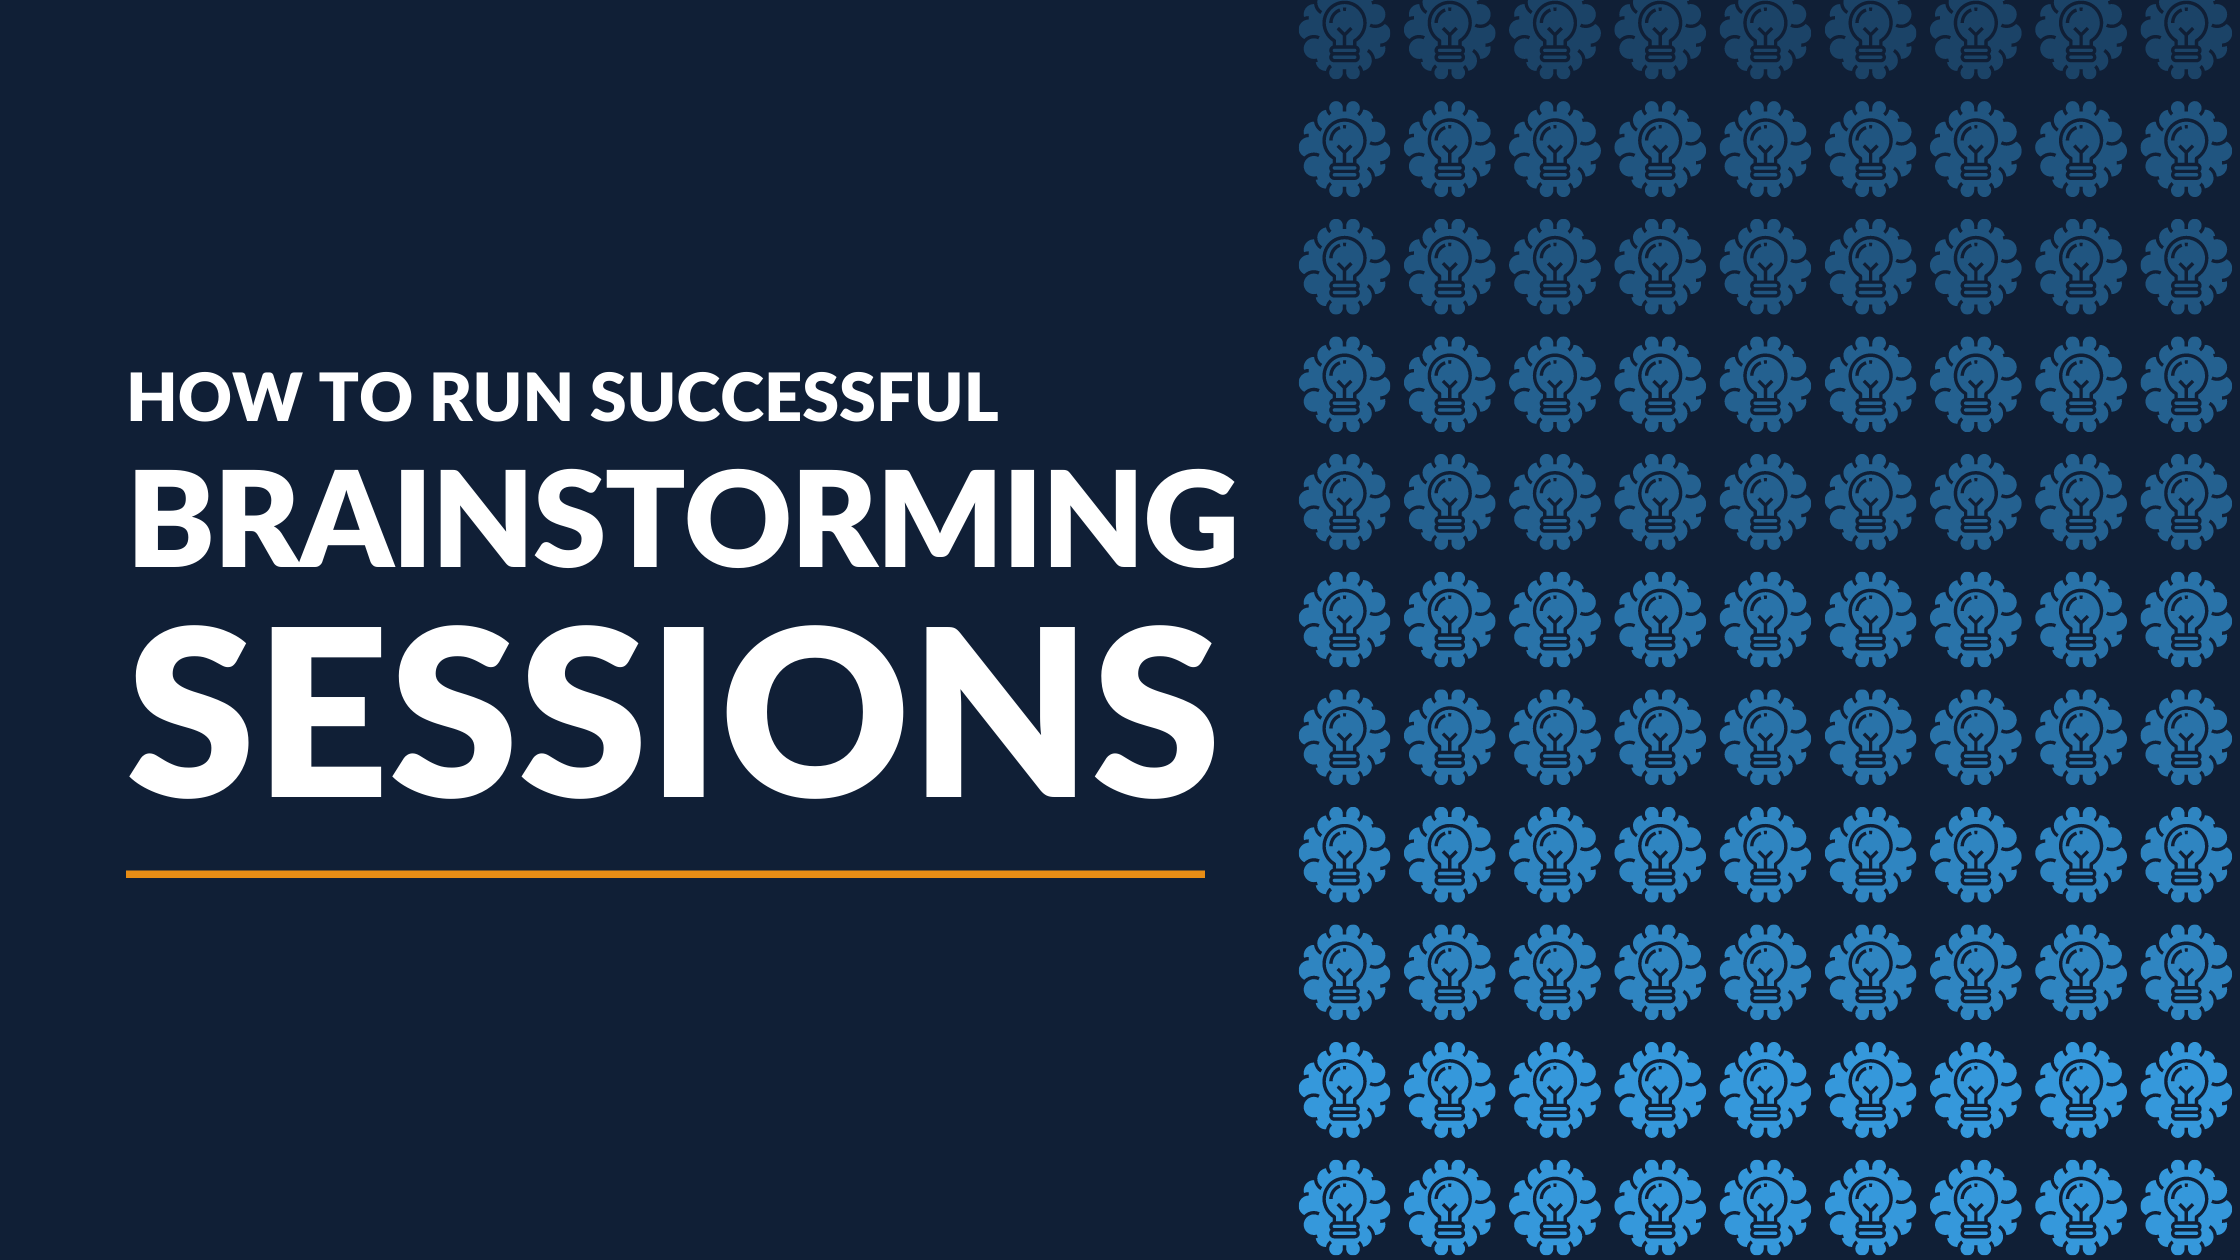 How to Run a Successful Brainstorming Session [Infographic]